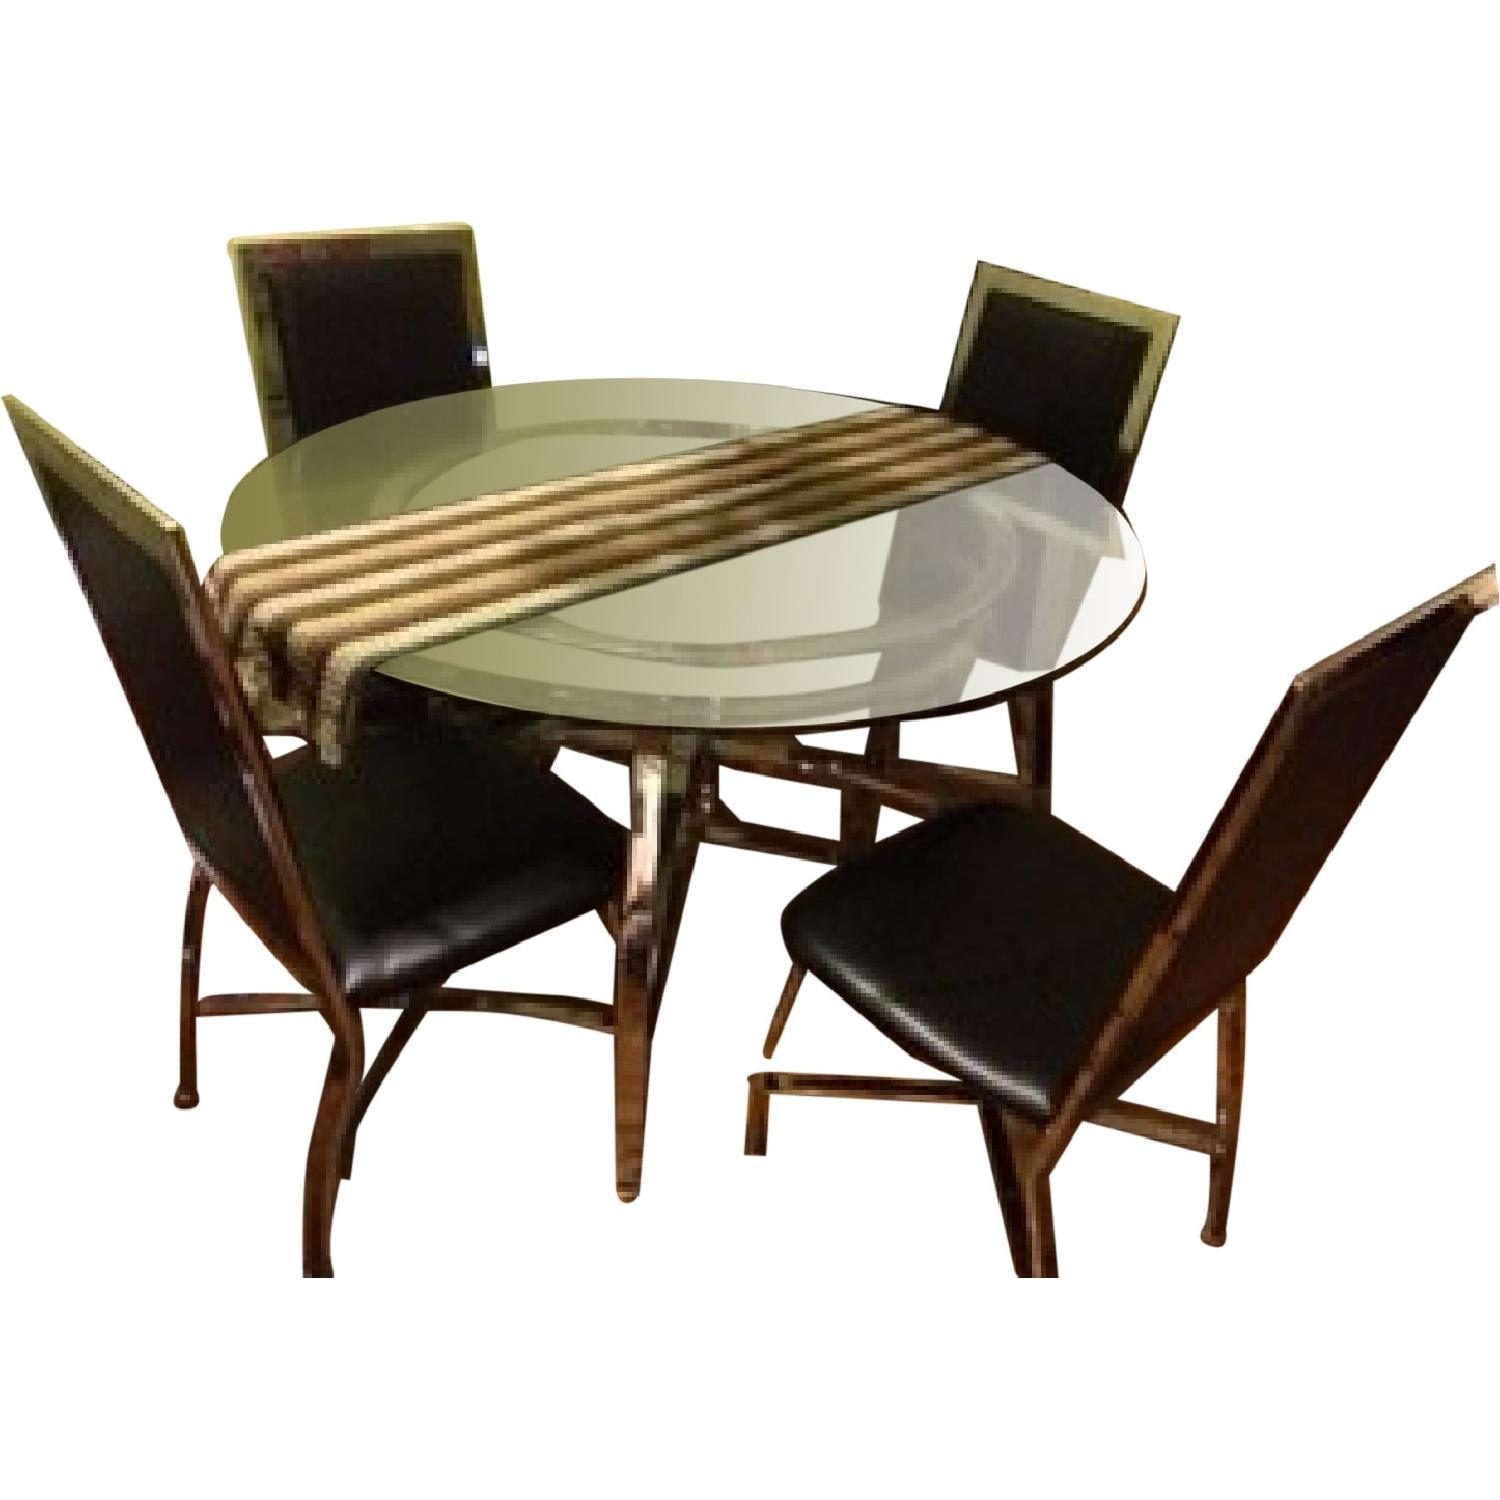 Round Glass Table Dining Table w/ 4 Chairs - image-0